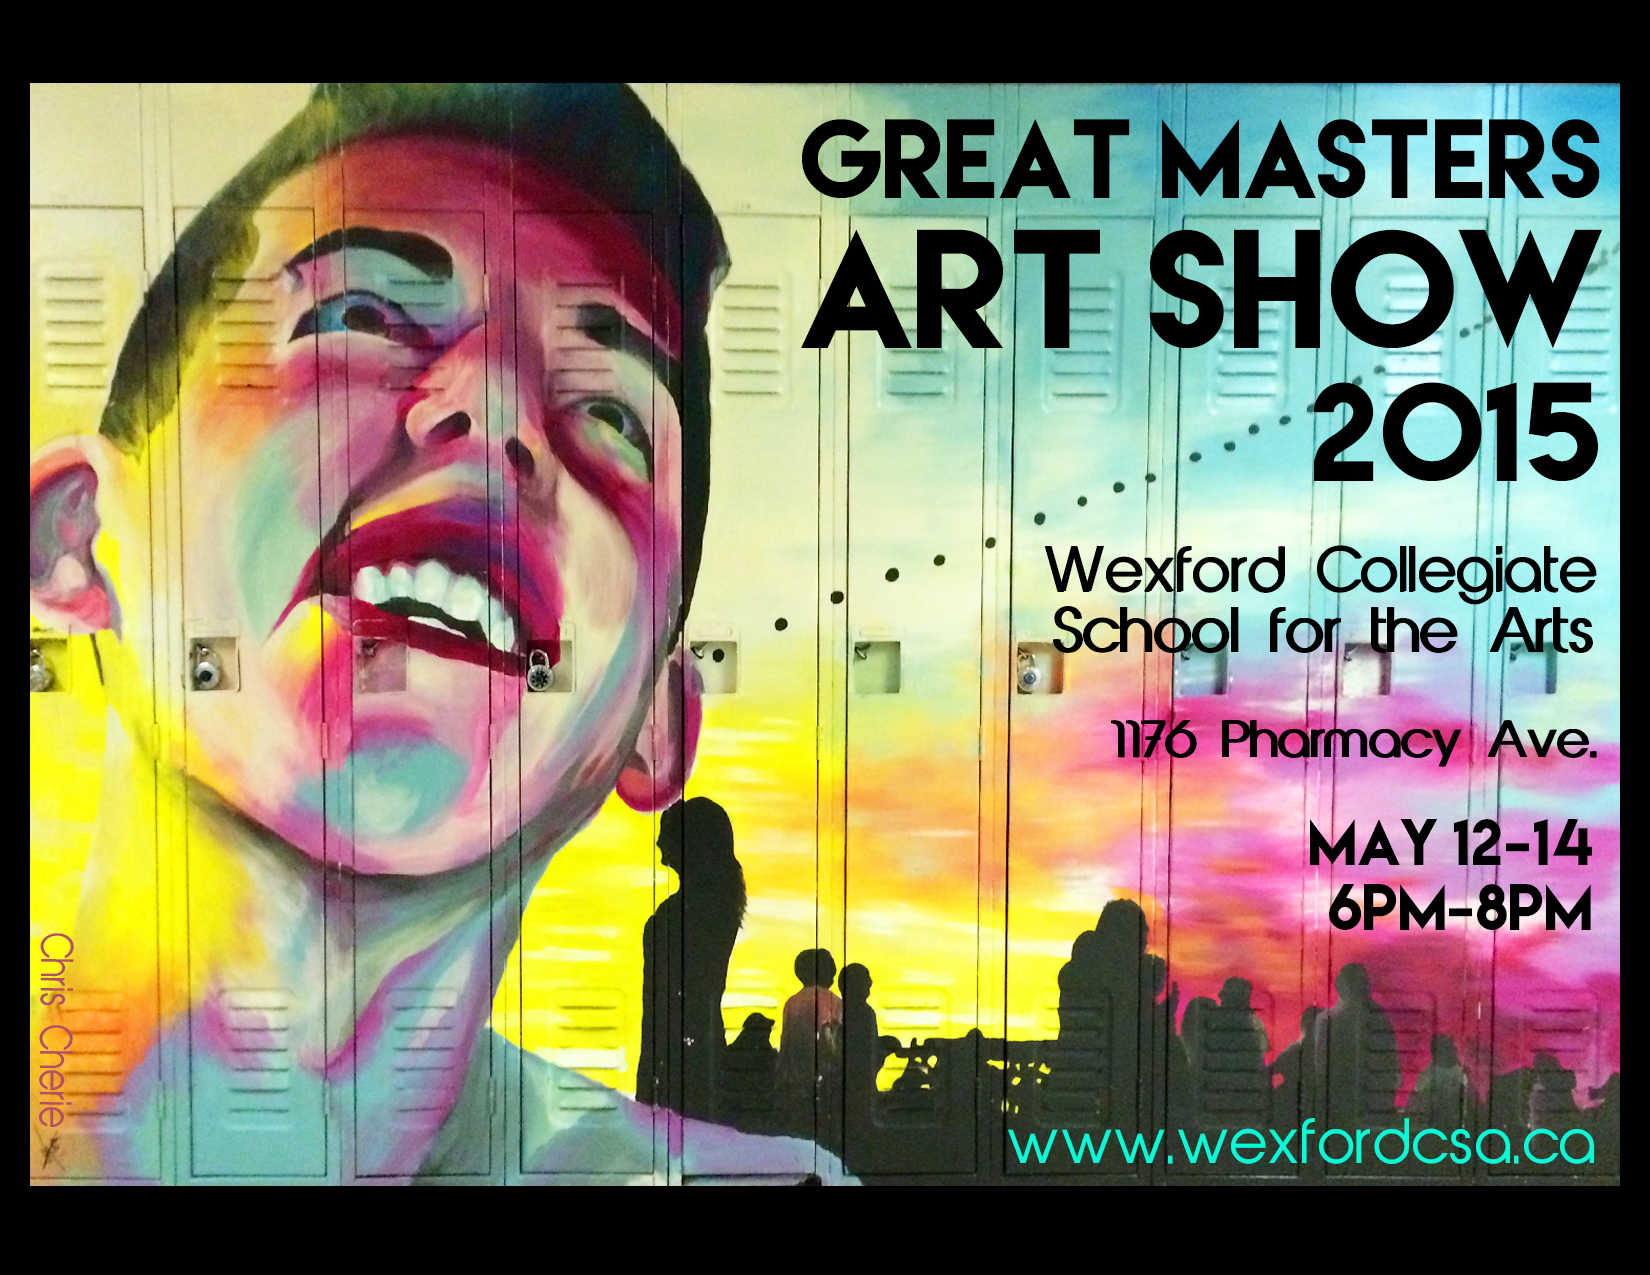 Wexford Great Masters Art Show 2015.jpg